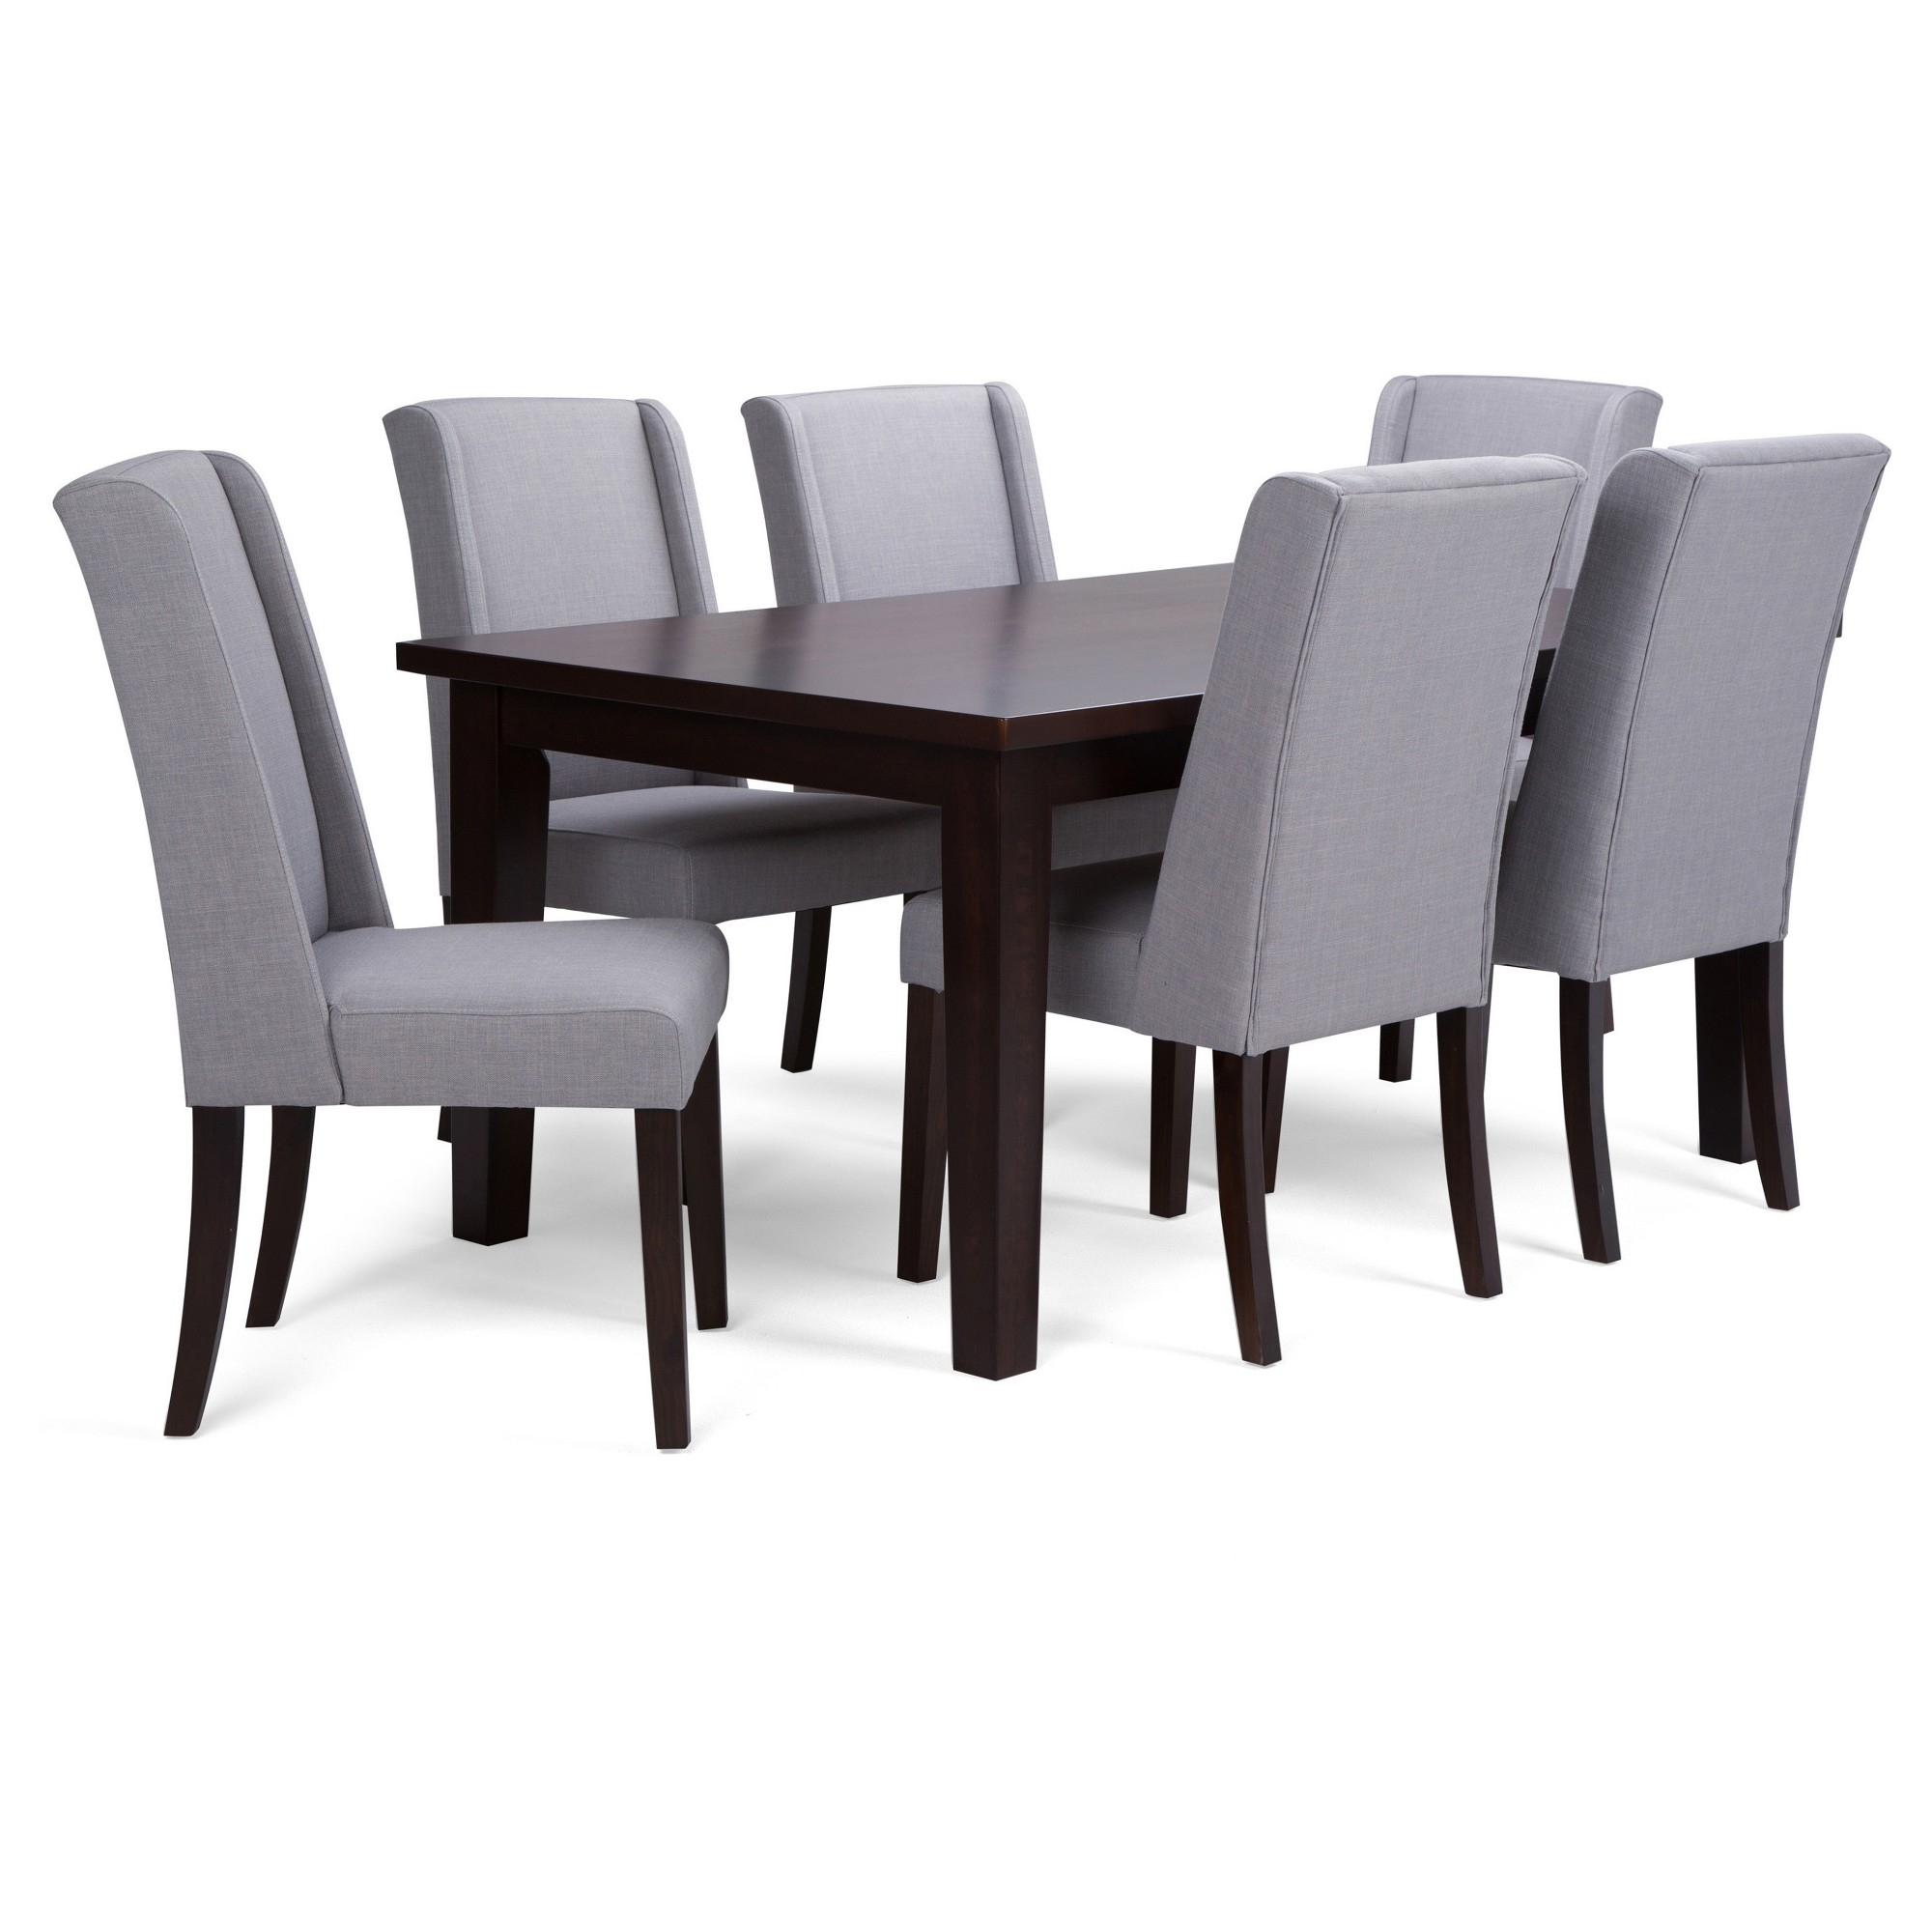 Simpli Home Dining Table Set Light Gray, Dove Gray | Products Within Most Recently Released Walden 7 Piece Extension Dining Sets (Image 11 of 20)